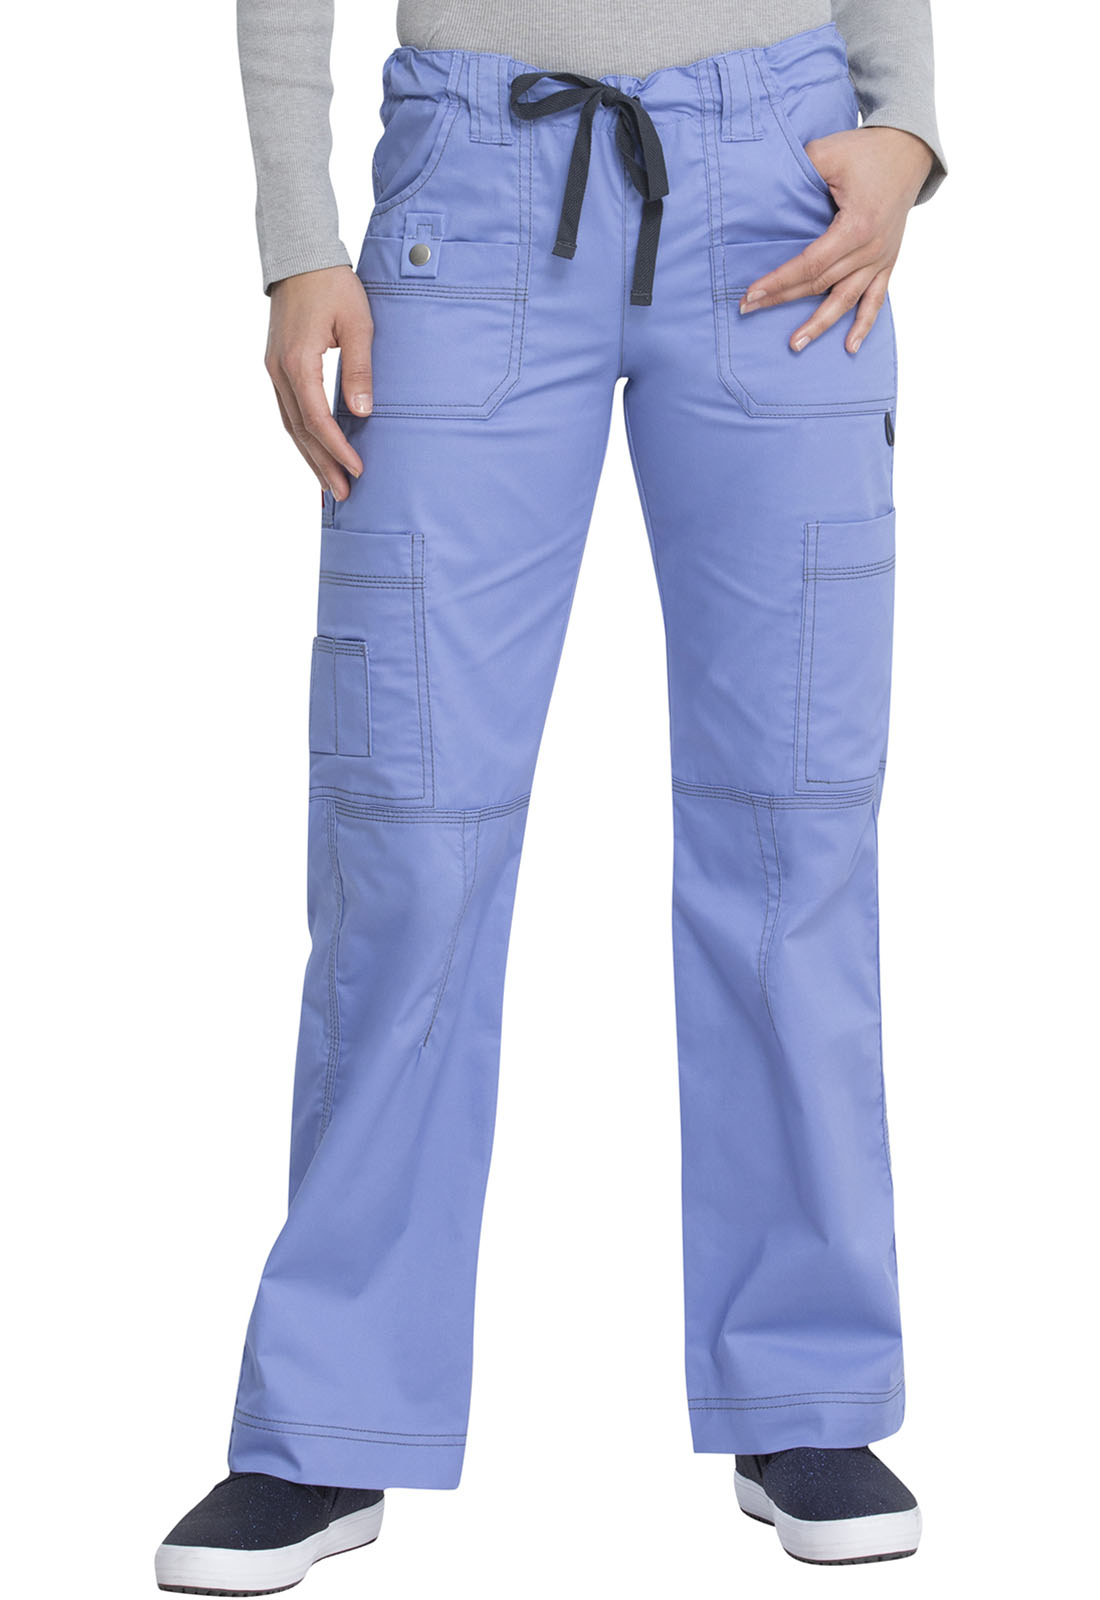 06826e8a5ae Gen Flex Low Rise Drawstring Cargo Pant in Ceil 857455-CBLZ from ...